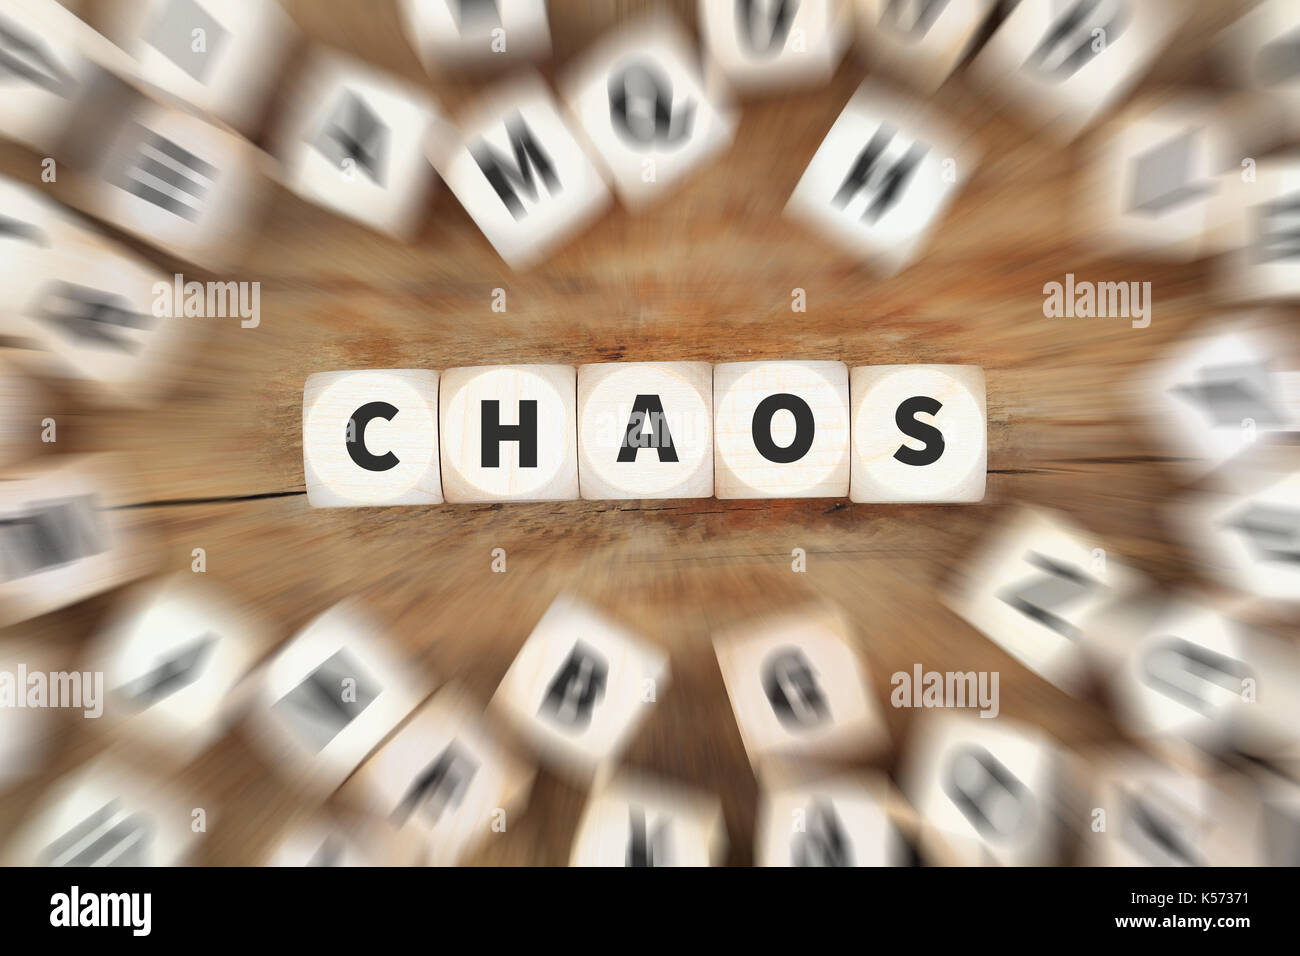 Chaos disorder order office dice business concept idea - Stock Image